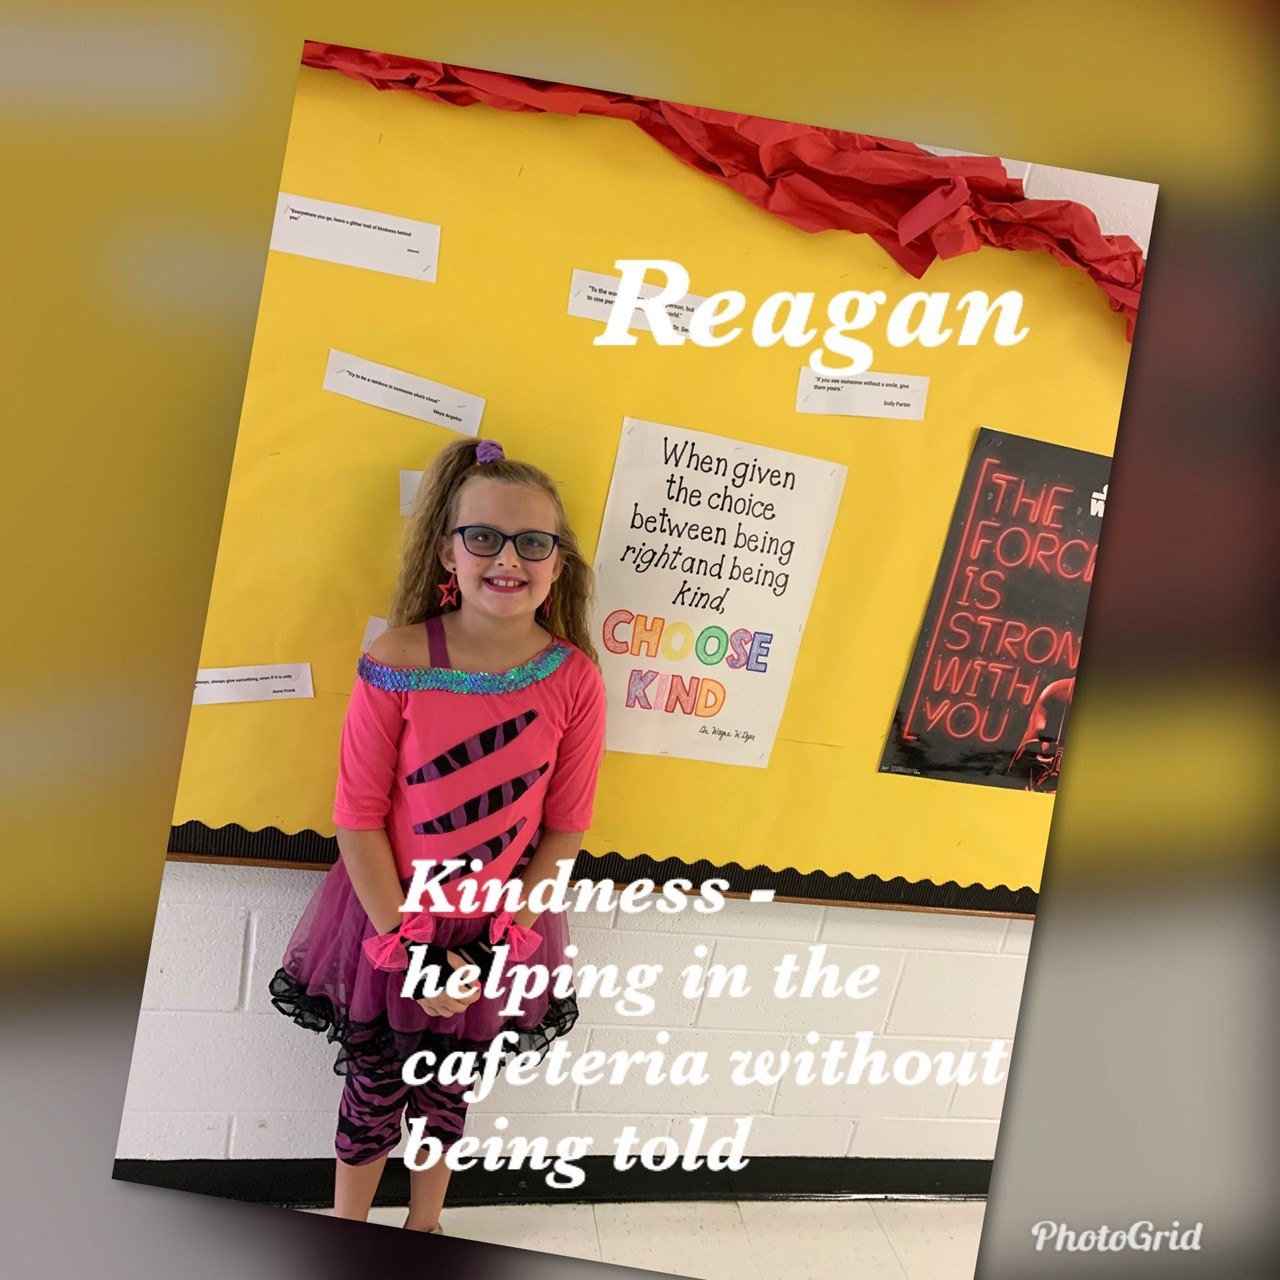 3rd grade student showing kindness!